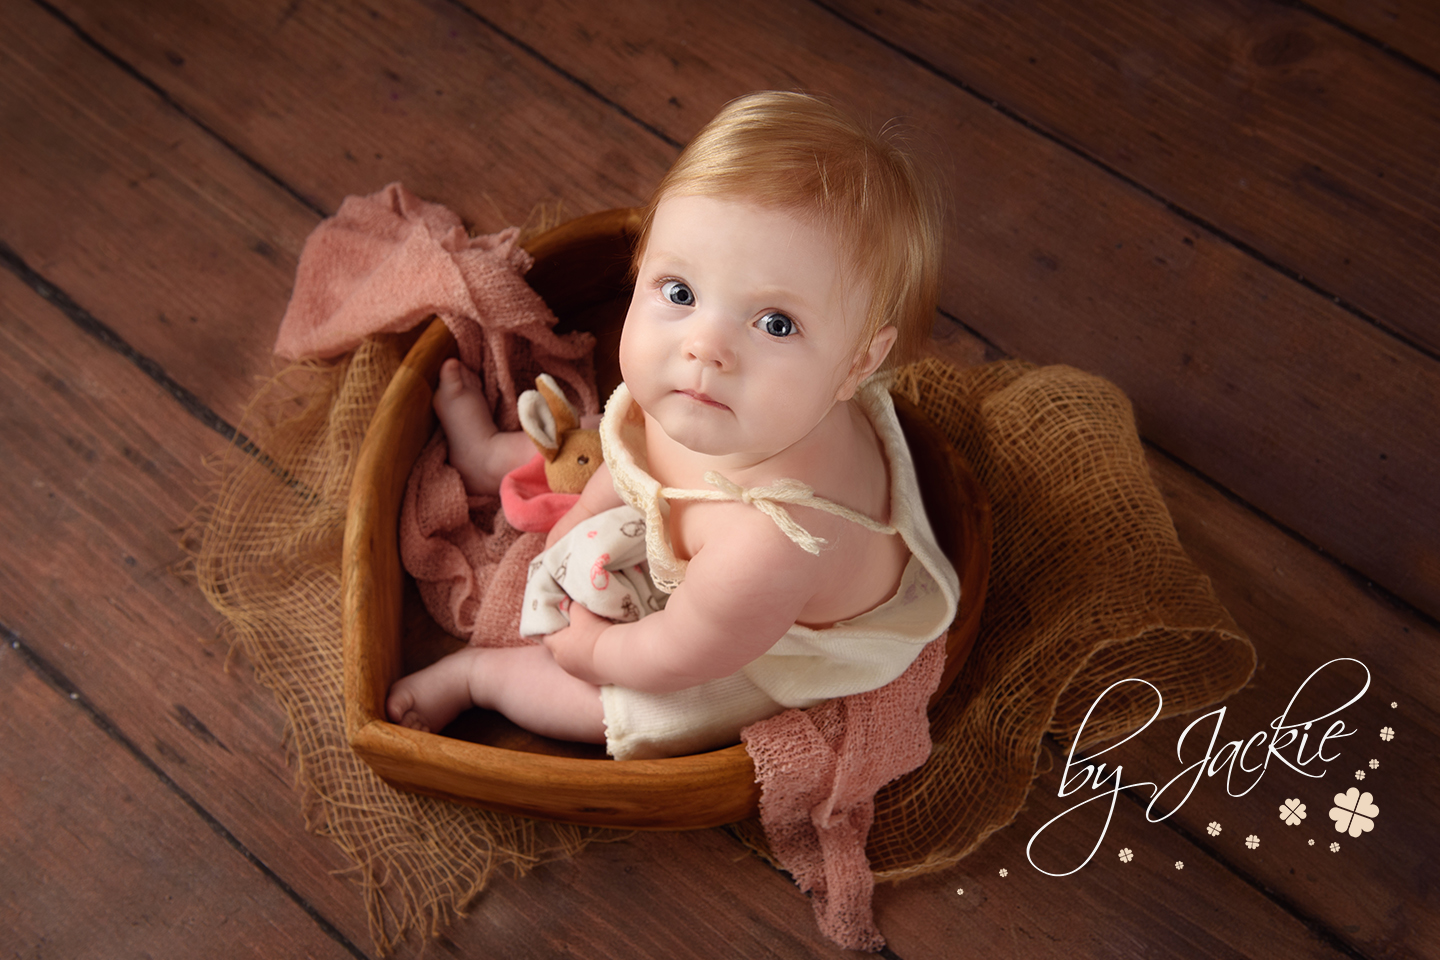 Milestone photography by Babies By Jackie. Image of 8 month old baby girl sitting in heart shaped bowl. Market Weighton, York, Pocklington, Malton, Hessle, Asselby, Beverley, South Cave, Yorkshire UK